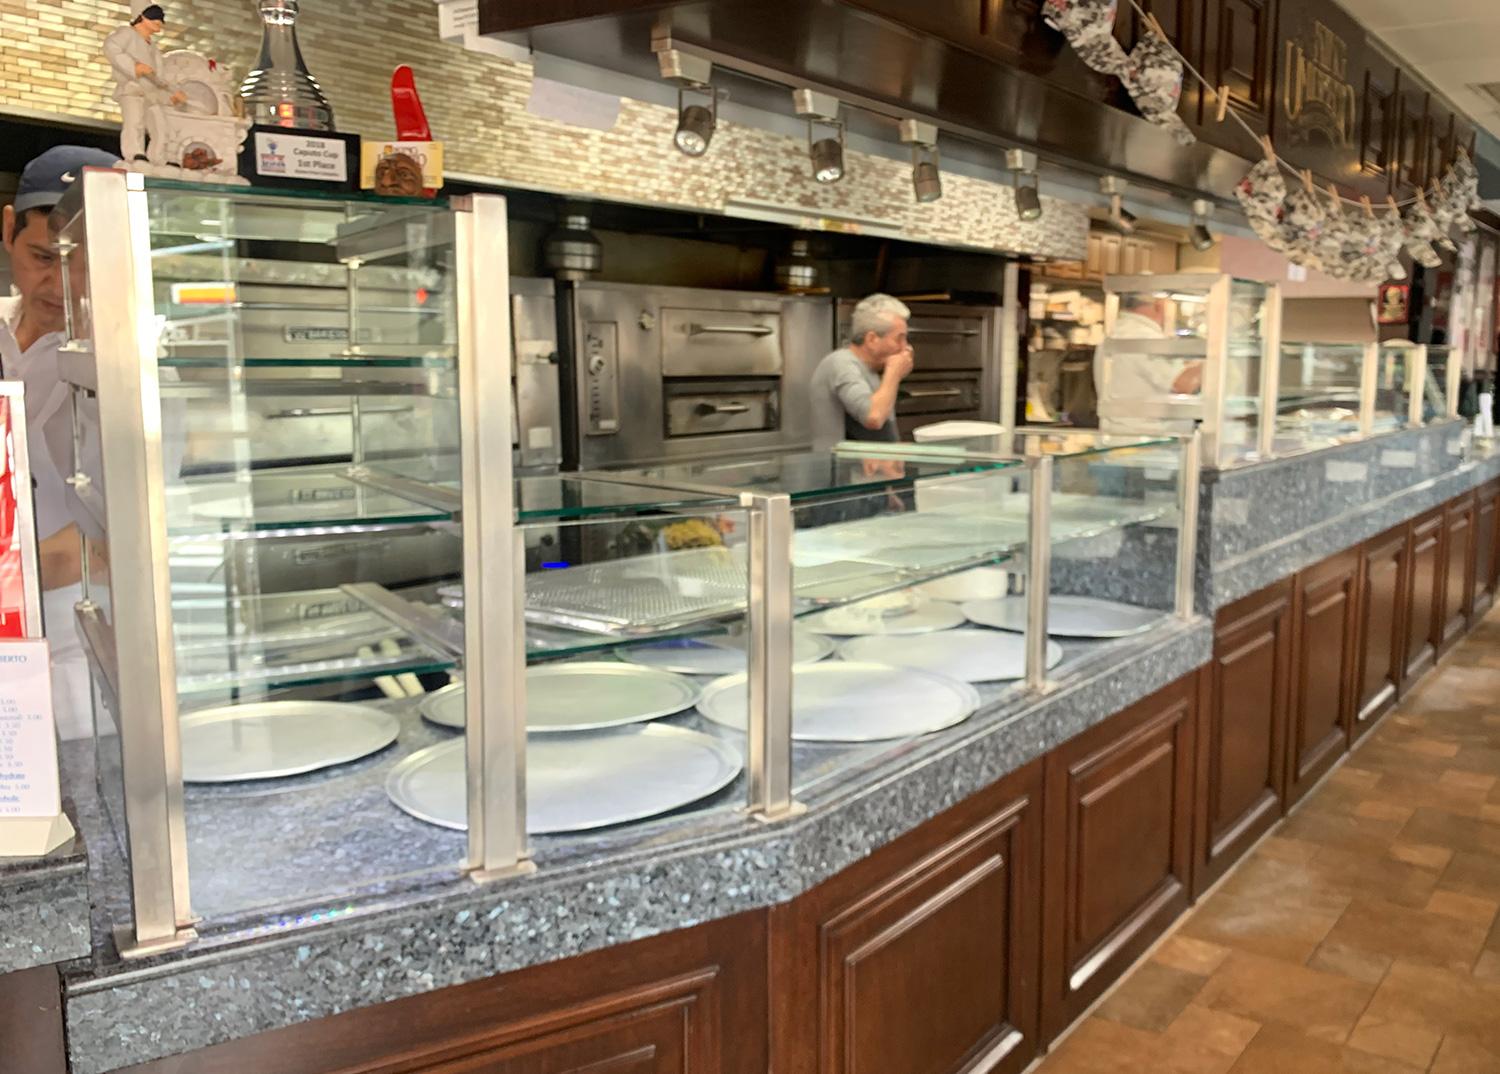 1 1/2 inch  Square Stainless Steel with LED Lights | King Umberto, Elmont, NY